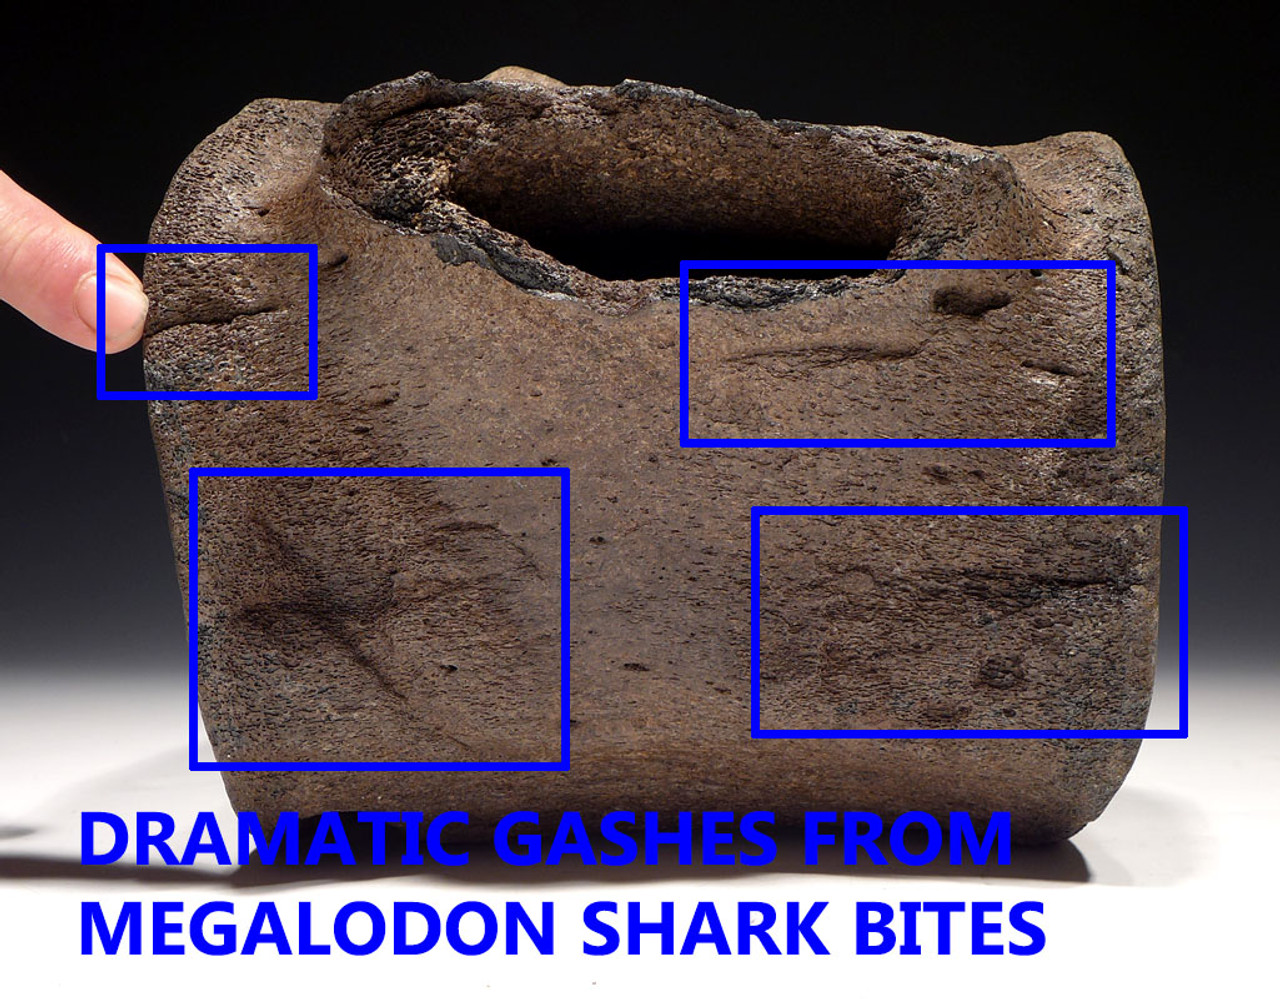 WH027  - RARE GIANT INTACT FOSSIL SPERM WHALE VERTEBRA  WITH MEGALODON SHARK BITES FROM THE MIOCENE / PLIOCENE PERIOD